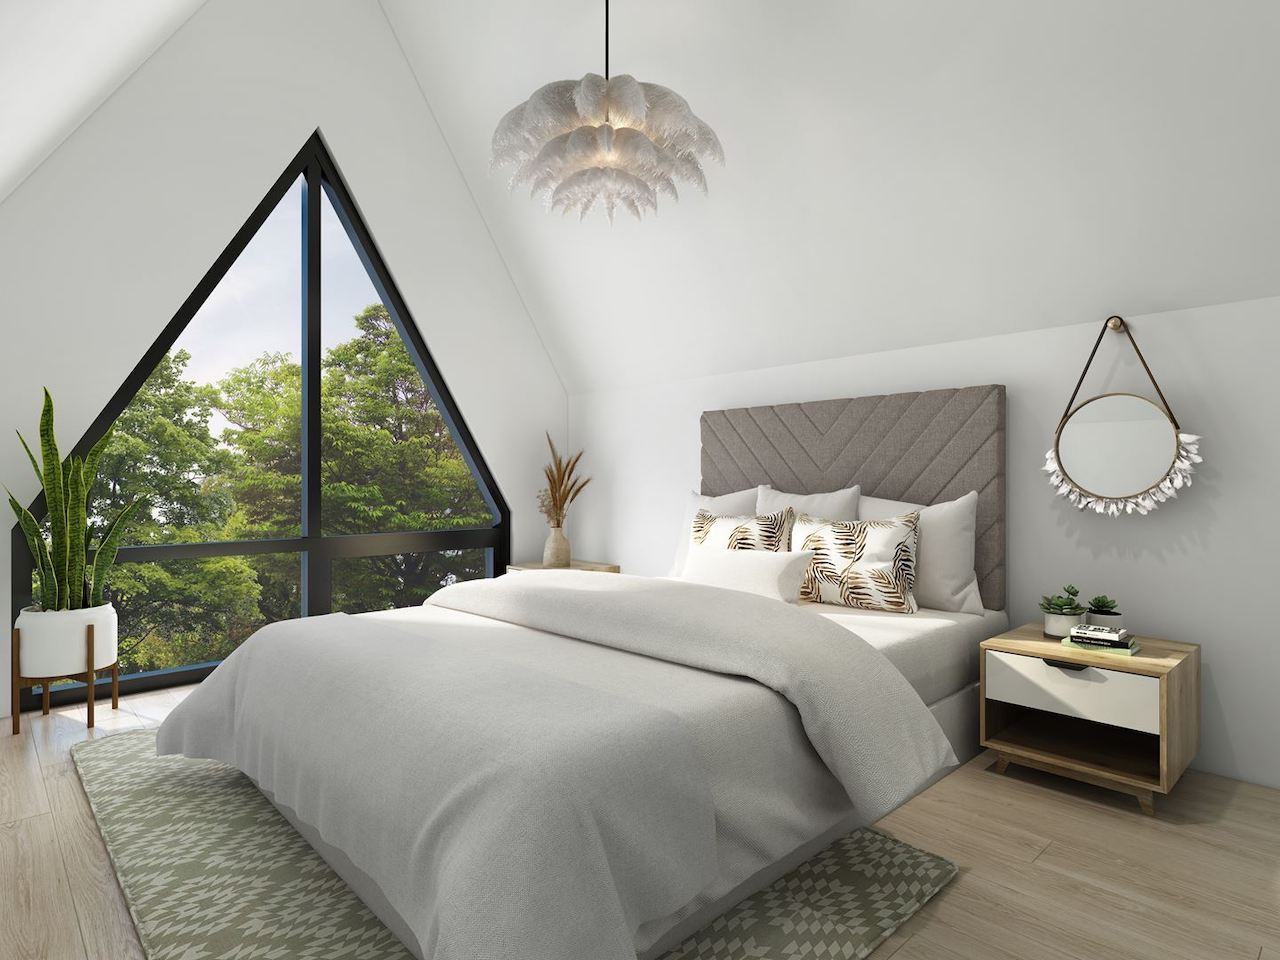 Interior rendering of The Boho Condos suite bedroom.